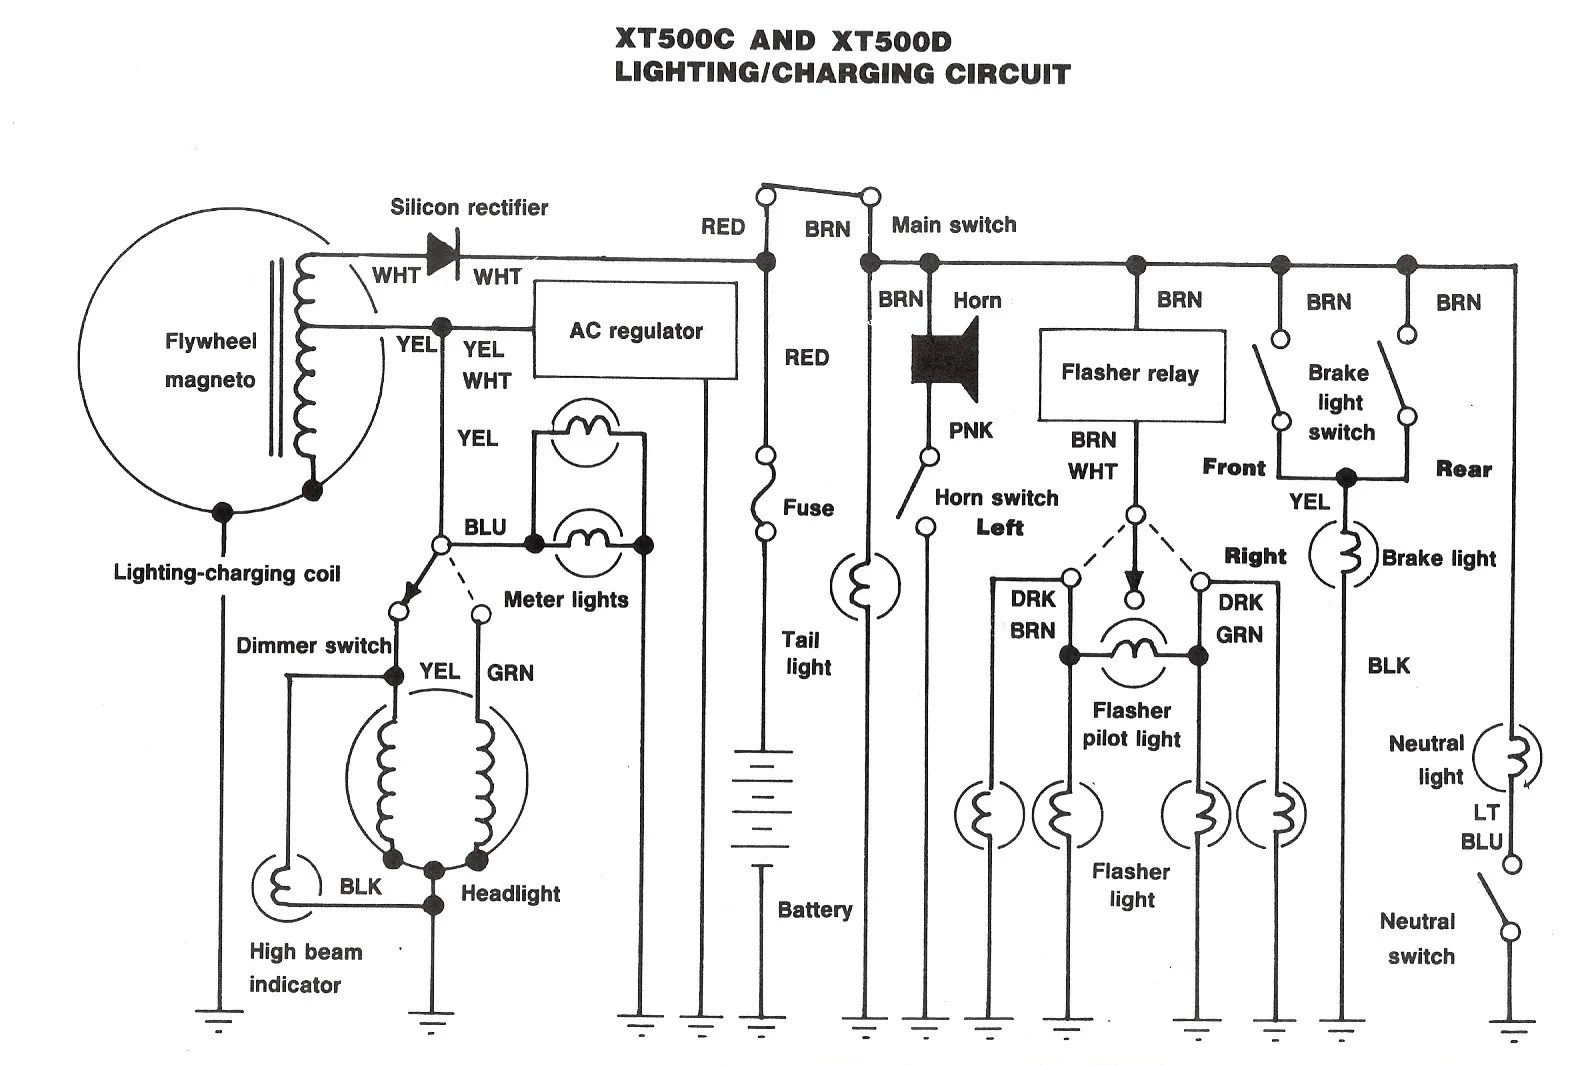 Enjoyable Sr500 Wiring Diagram Wiring Diagram Wiring Cloud Hisonuggs Outletorg